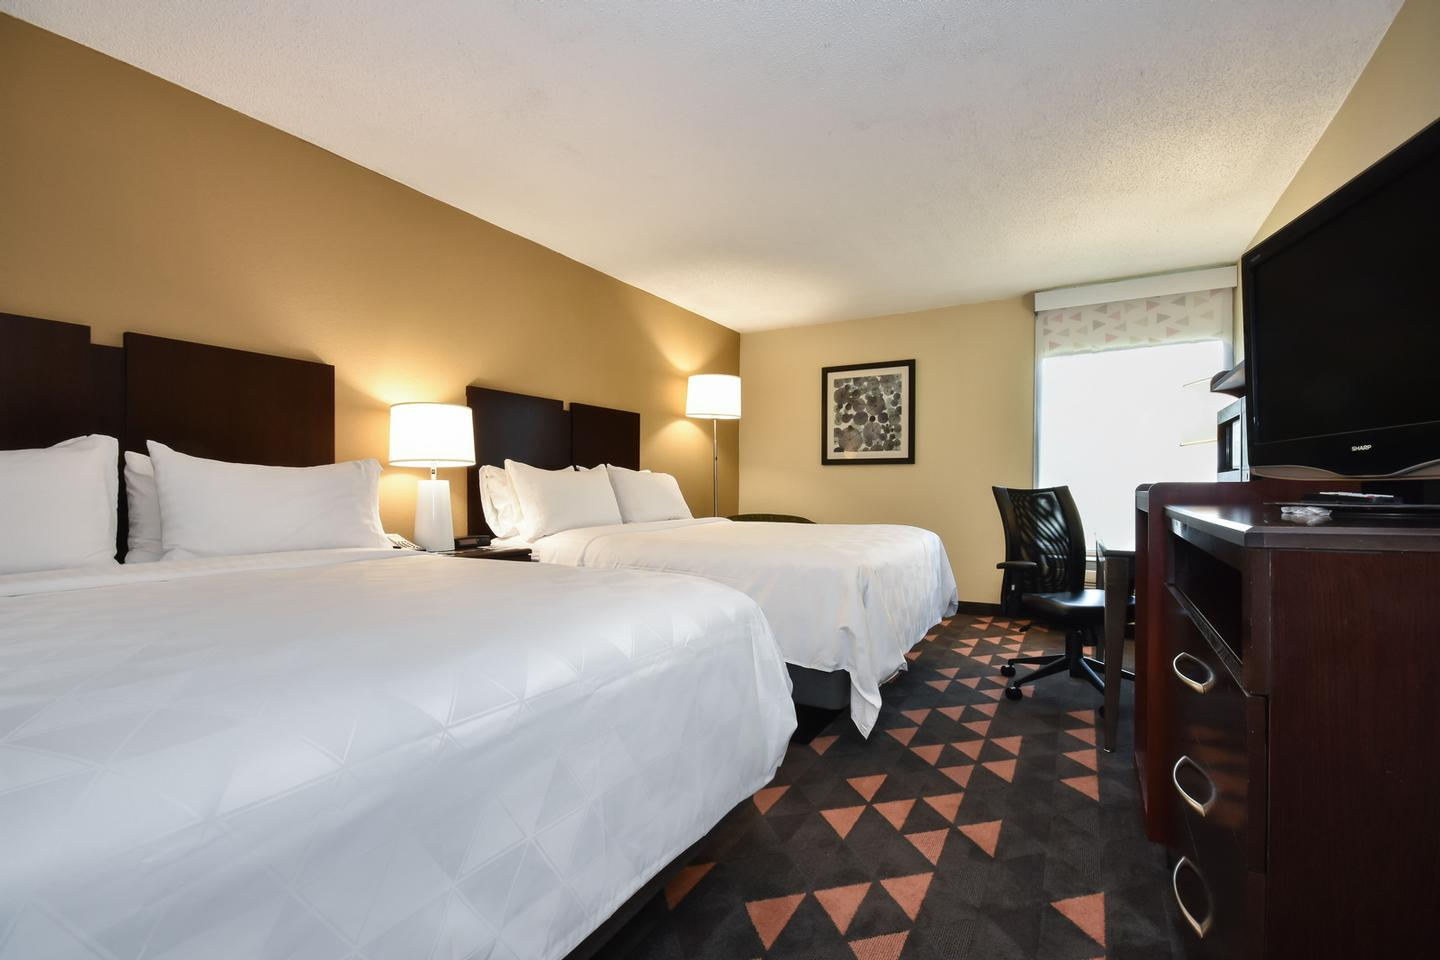 Family Friendly Rooms With 2 Double Beds. 5 of 9